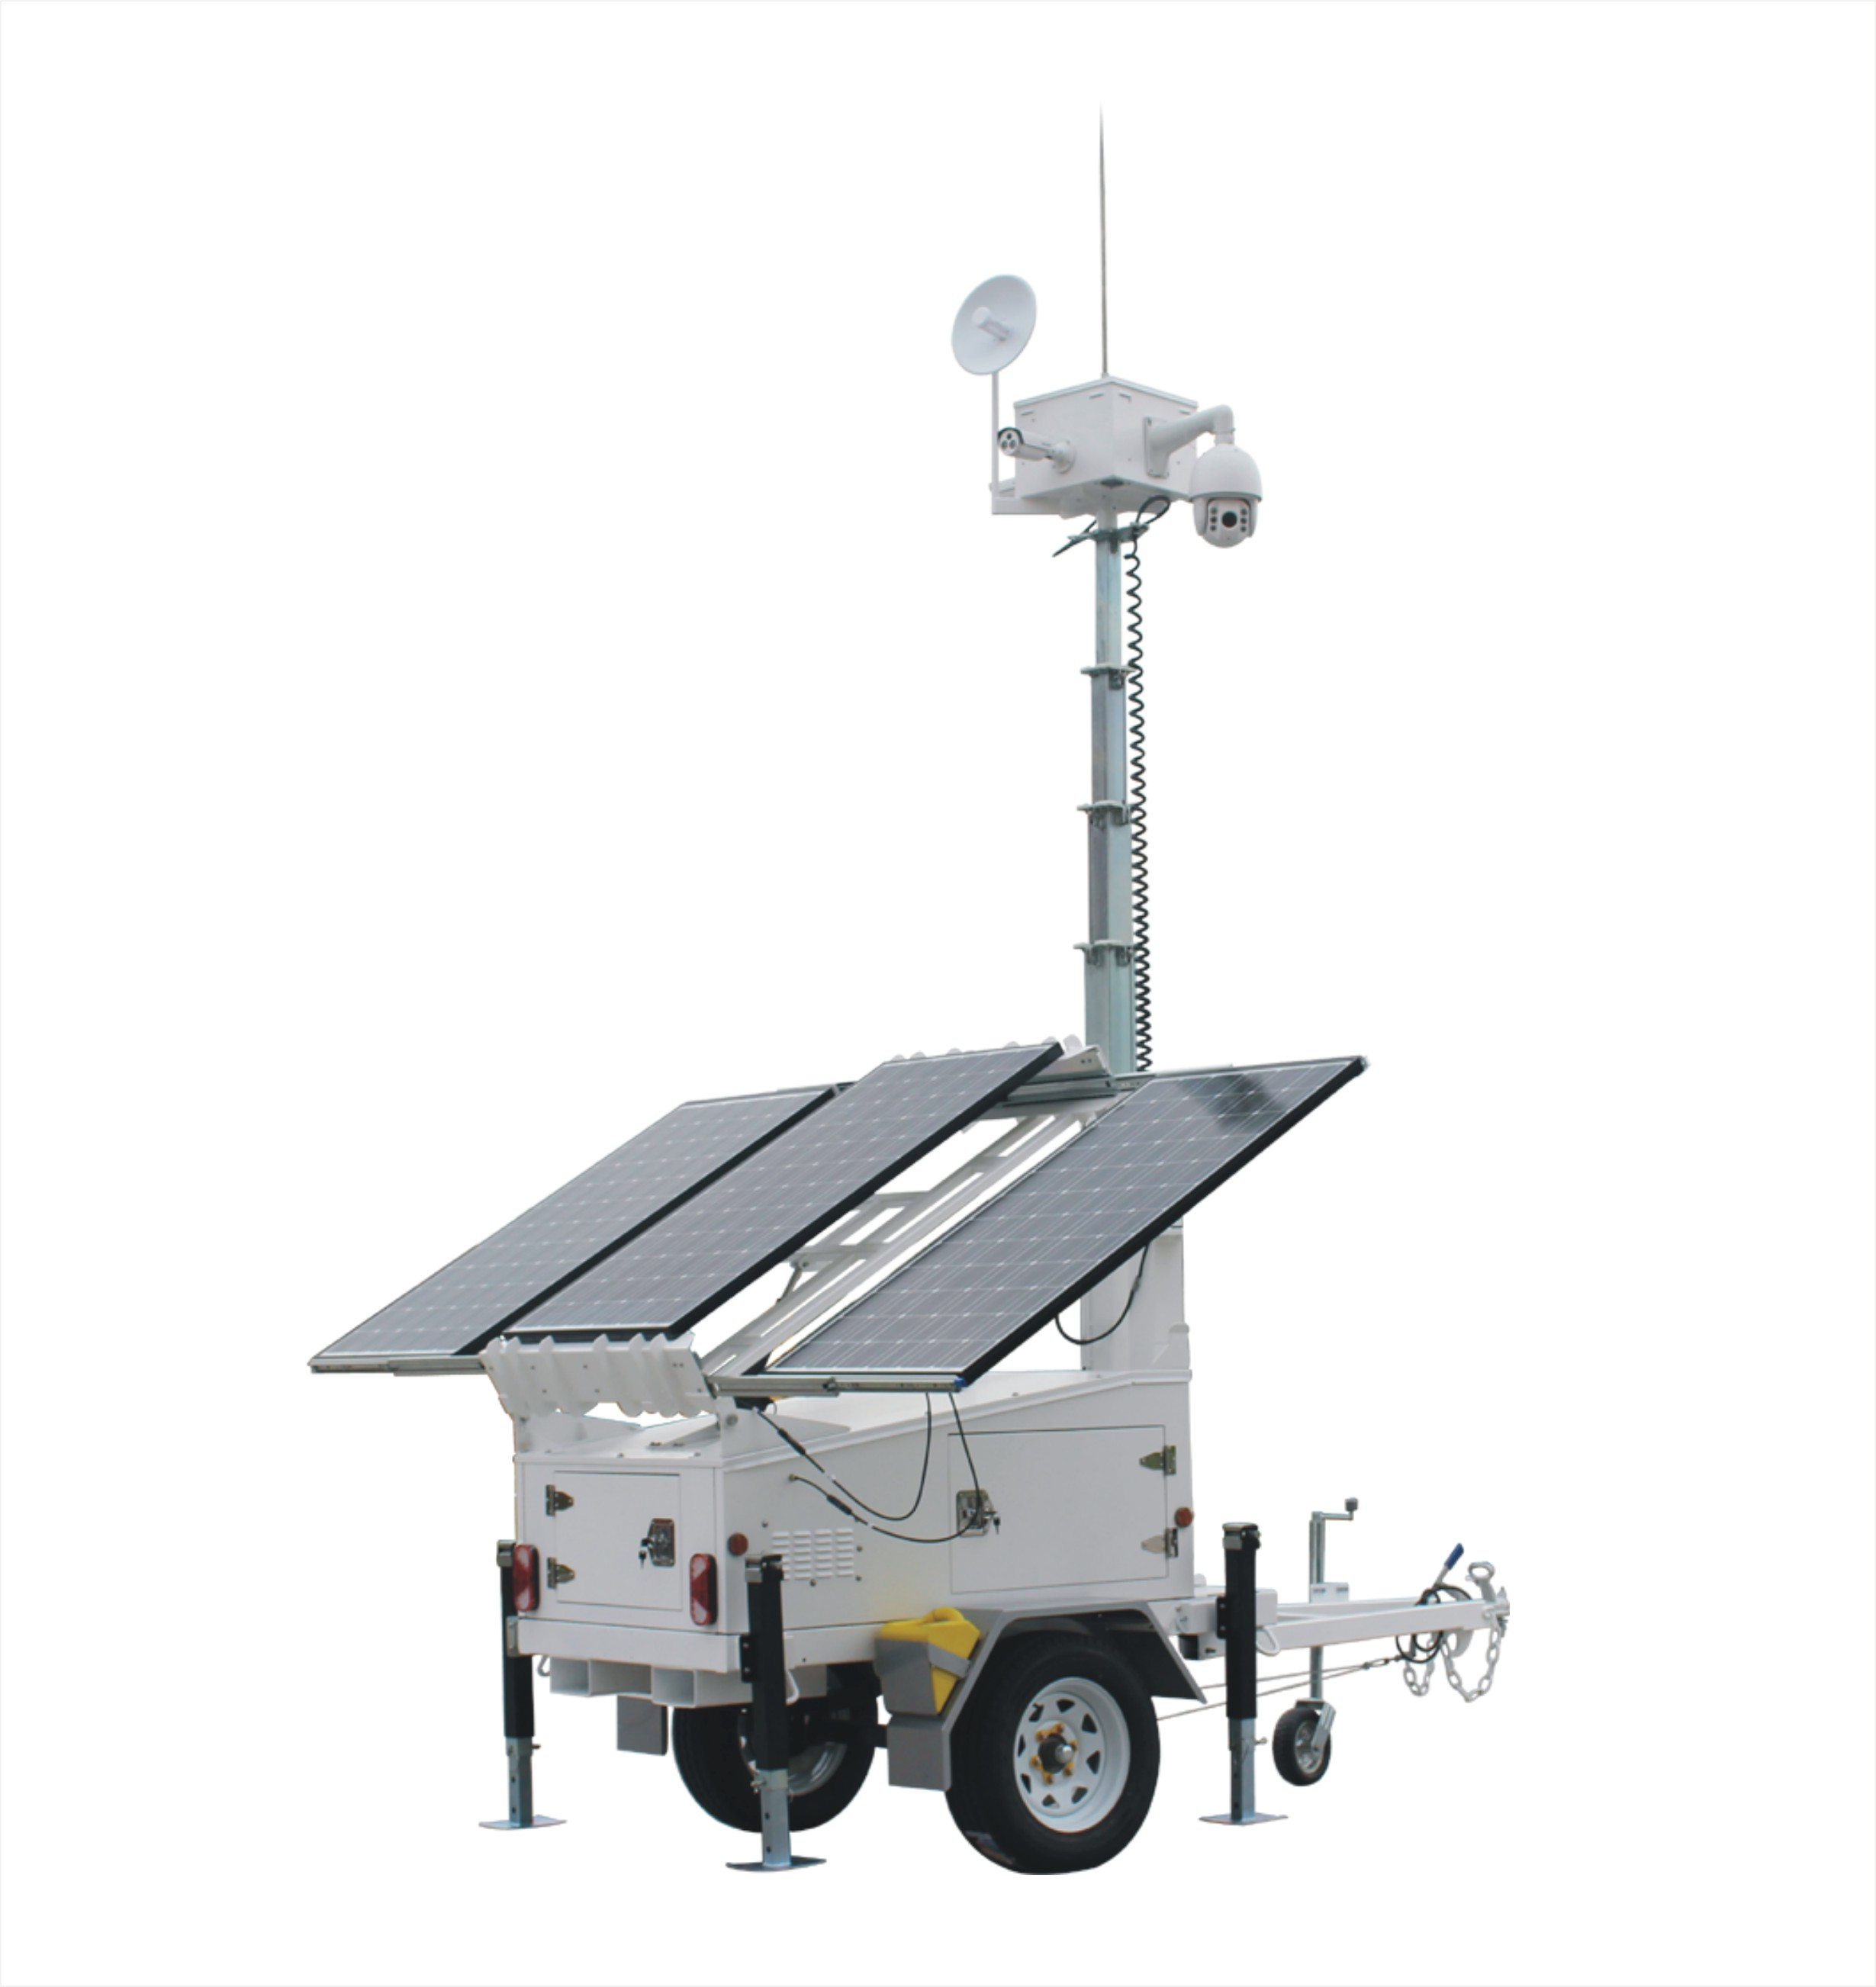 SV3300-4 Ezitown Solar Led Mobile Light Tower Trailer